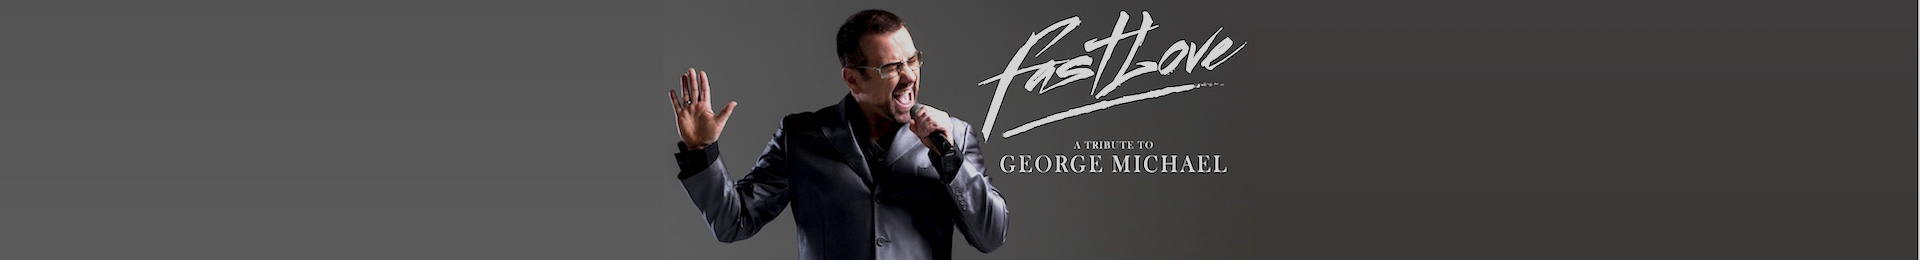 Fastlove a tribute to george michael at the lyric theatre london